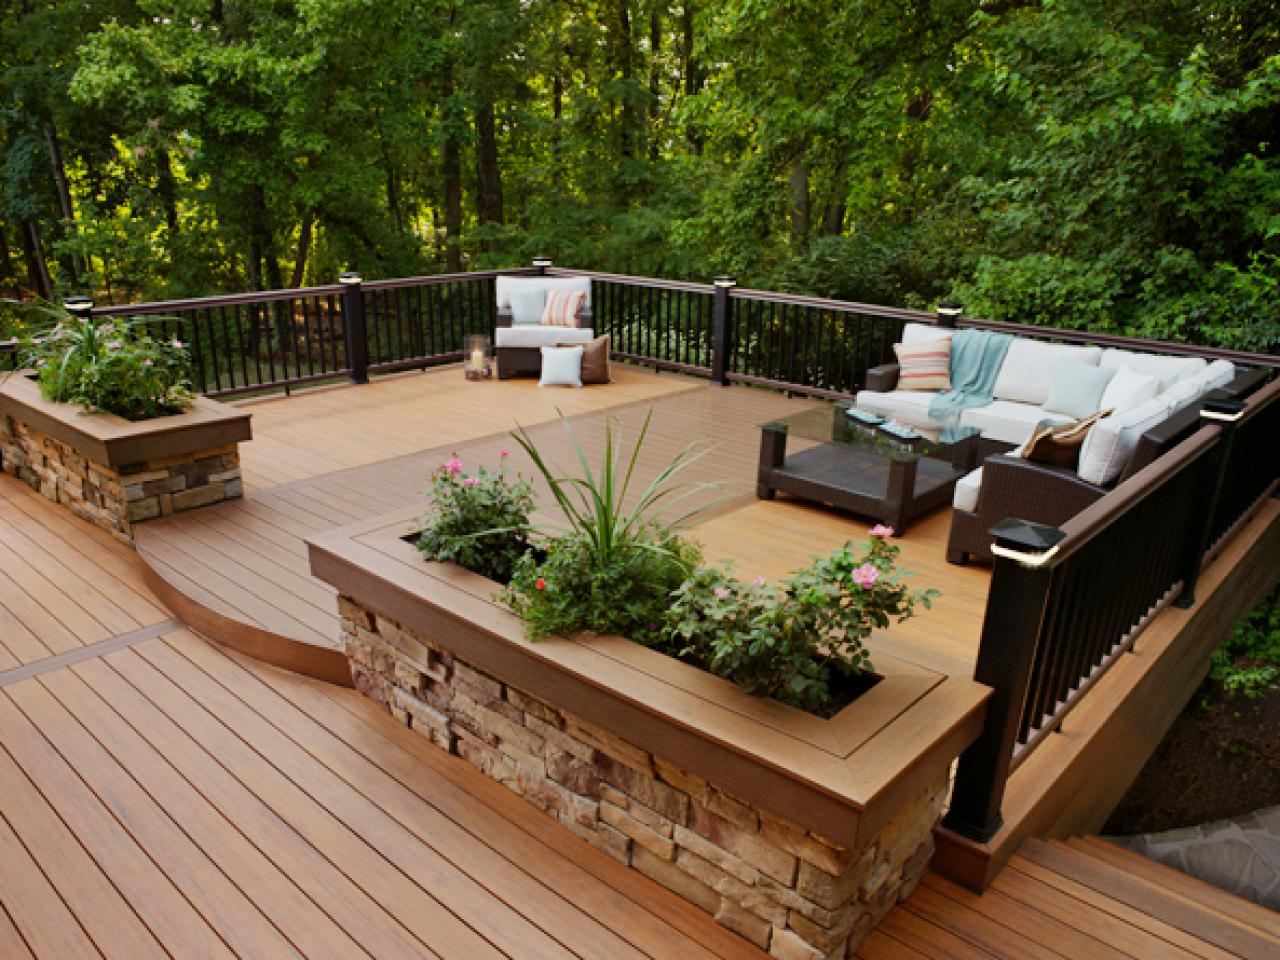 Deck designs ideas pictures hgtv for Outside decking material